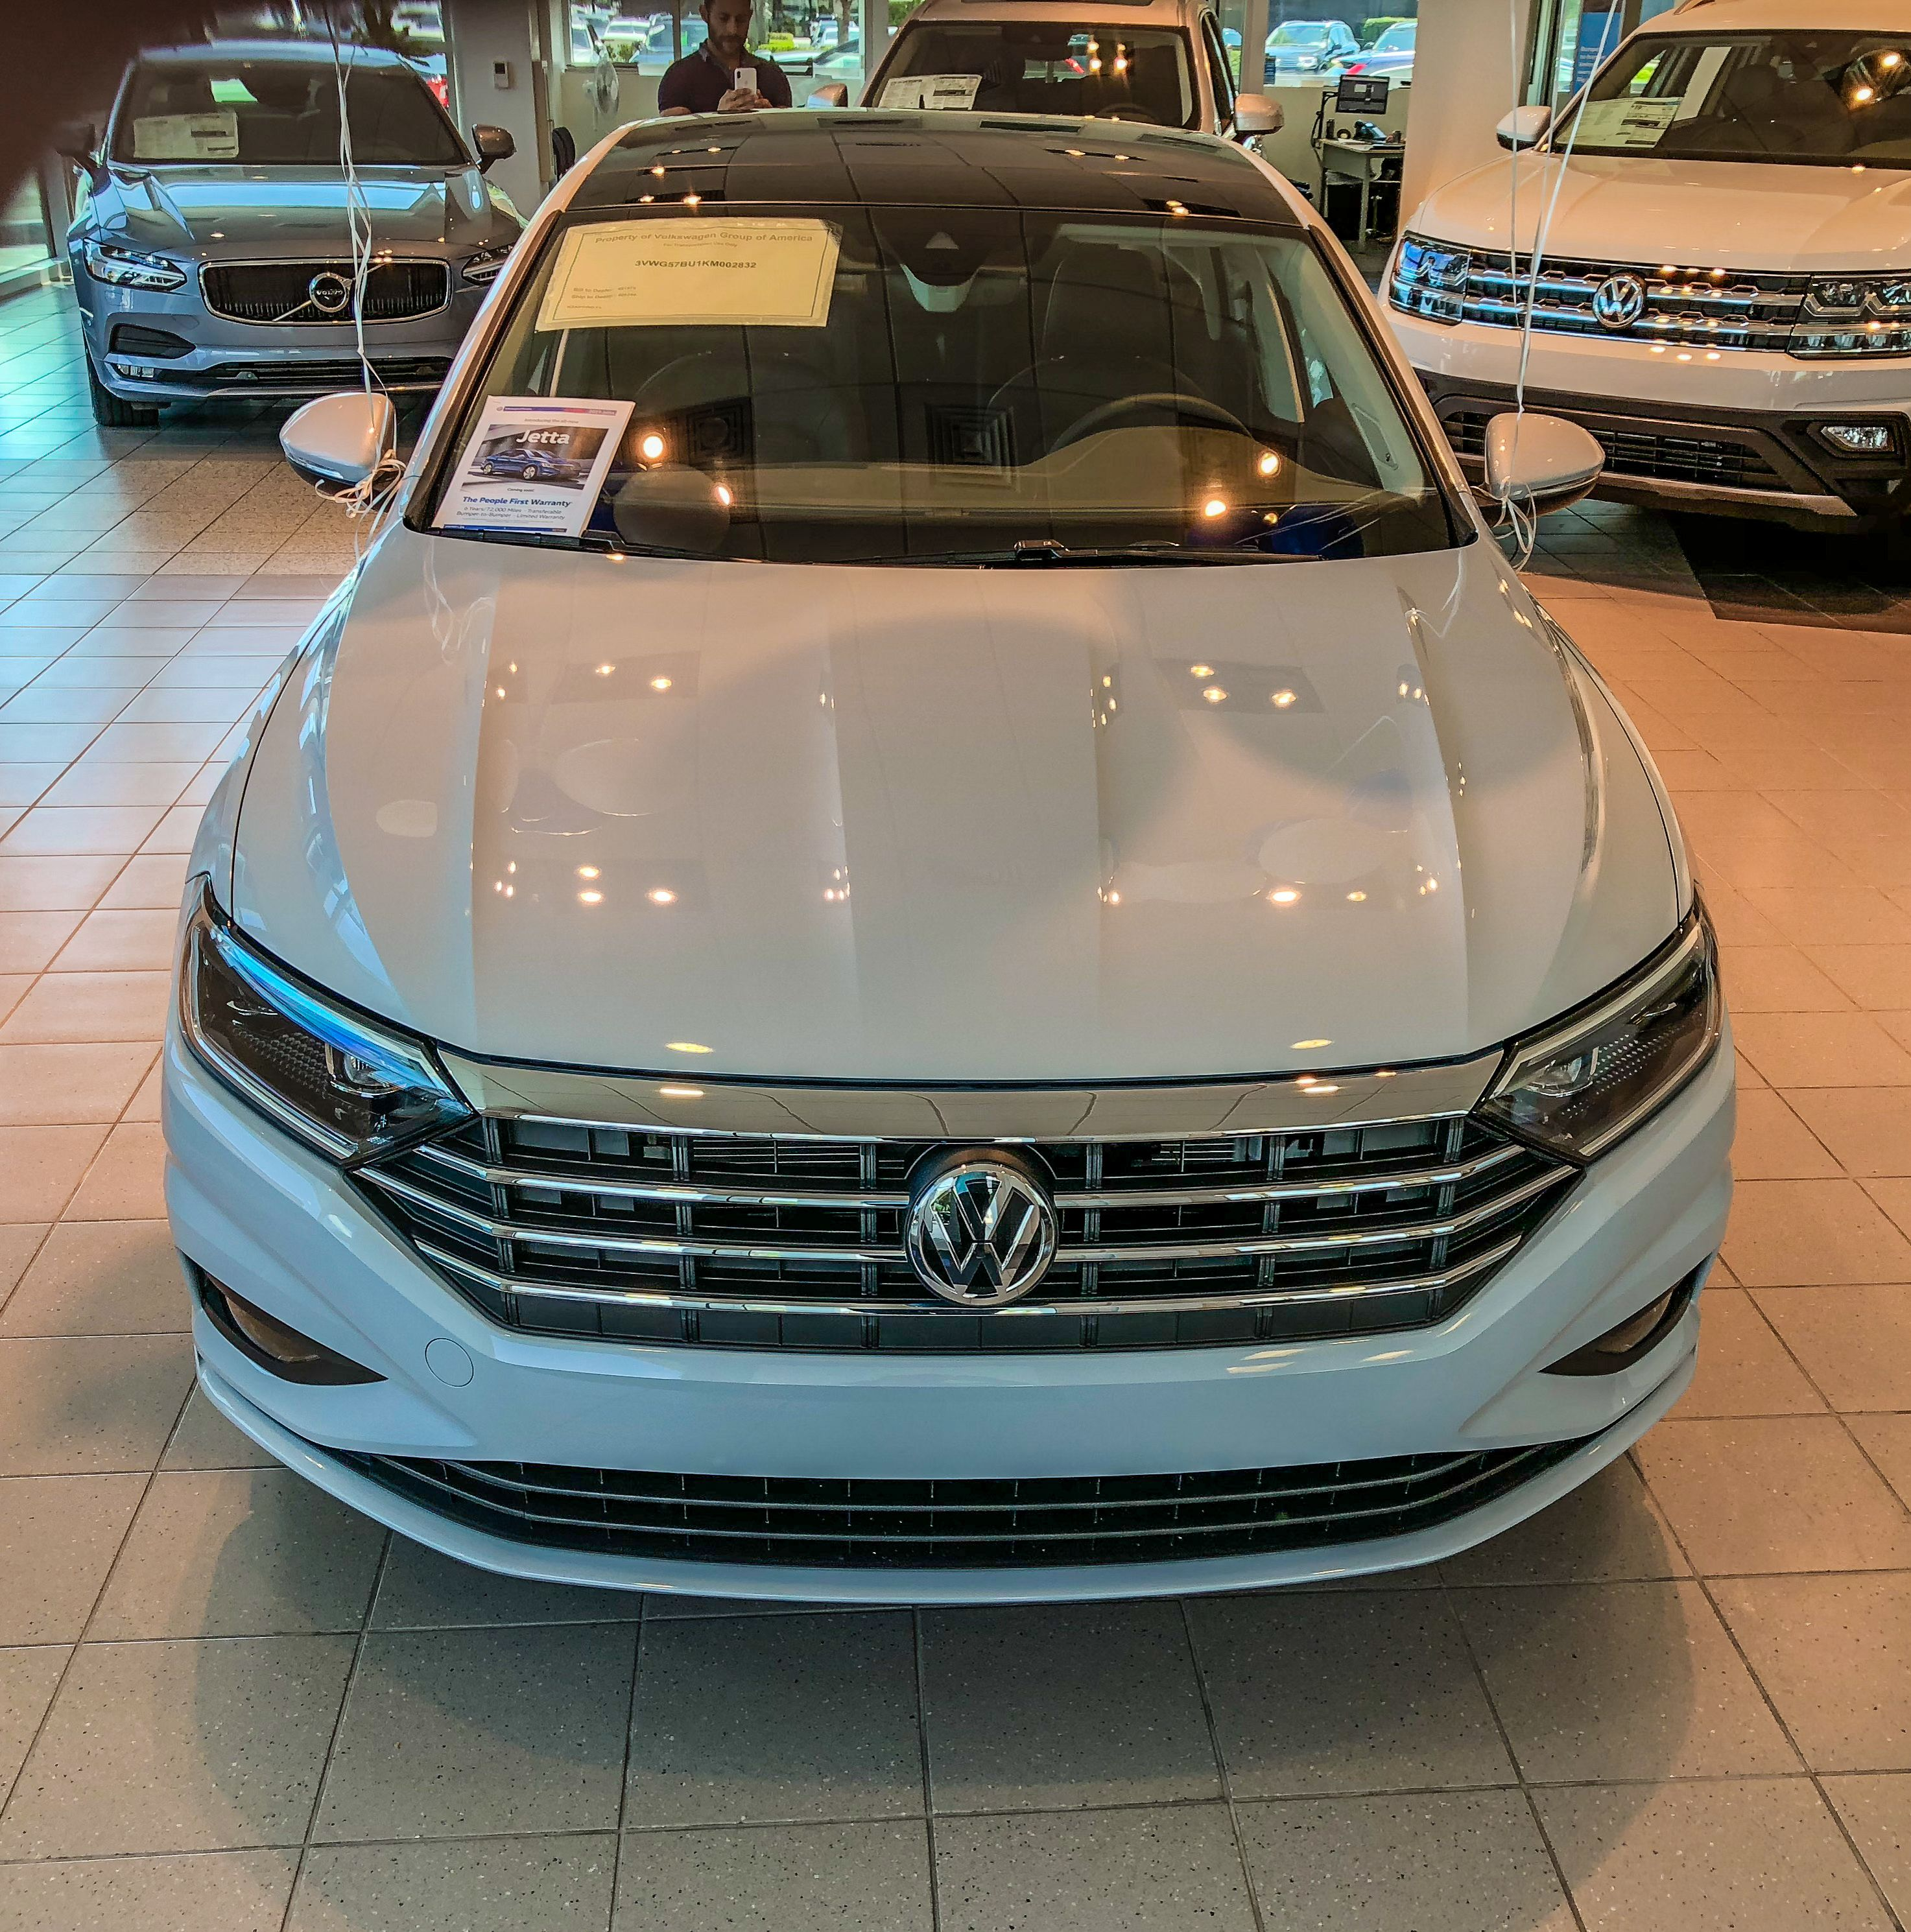 Check Out This Photo From Our Team Member Andrew S Of The All New 2019 Volkswagen Jetta Sel Available Now Fields Volkswagen Volkswagen Jetta Vw Jetta